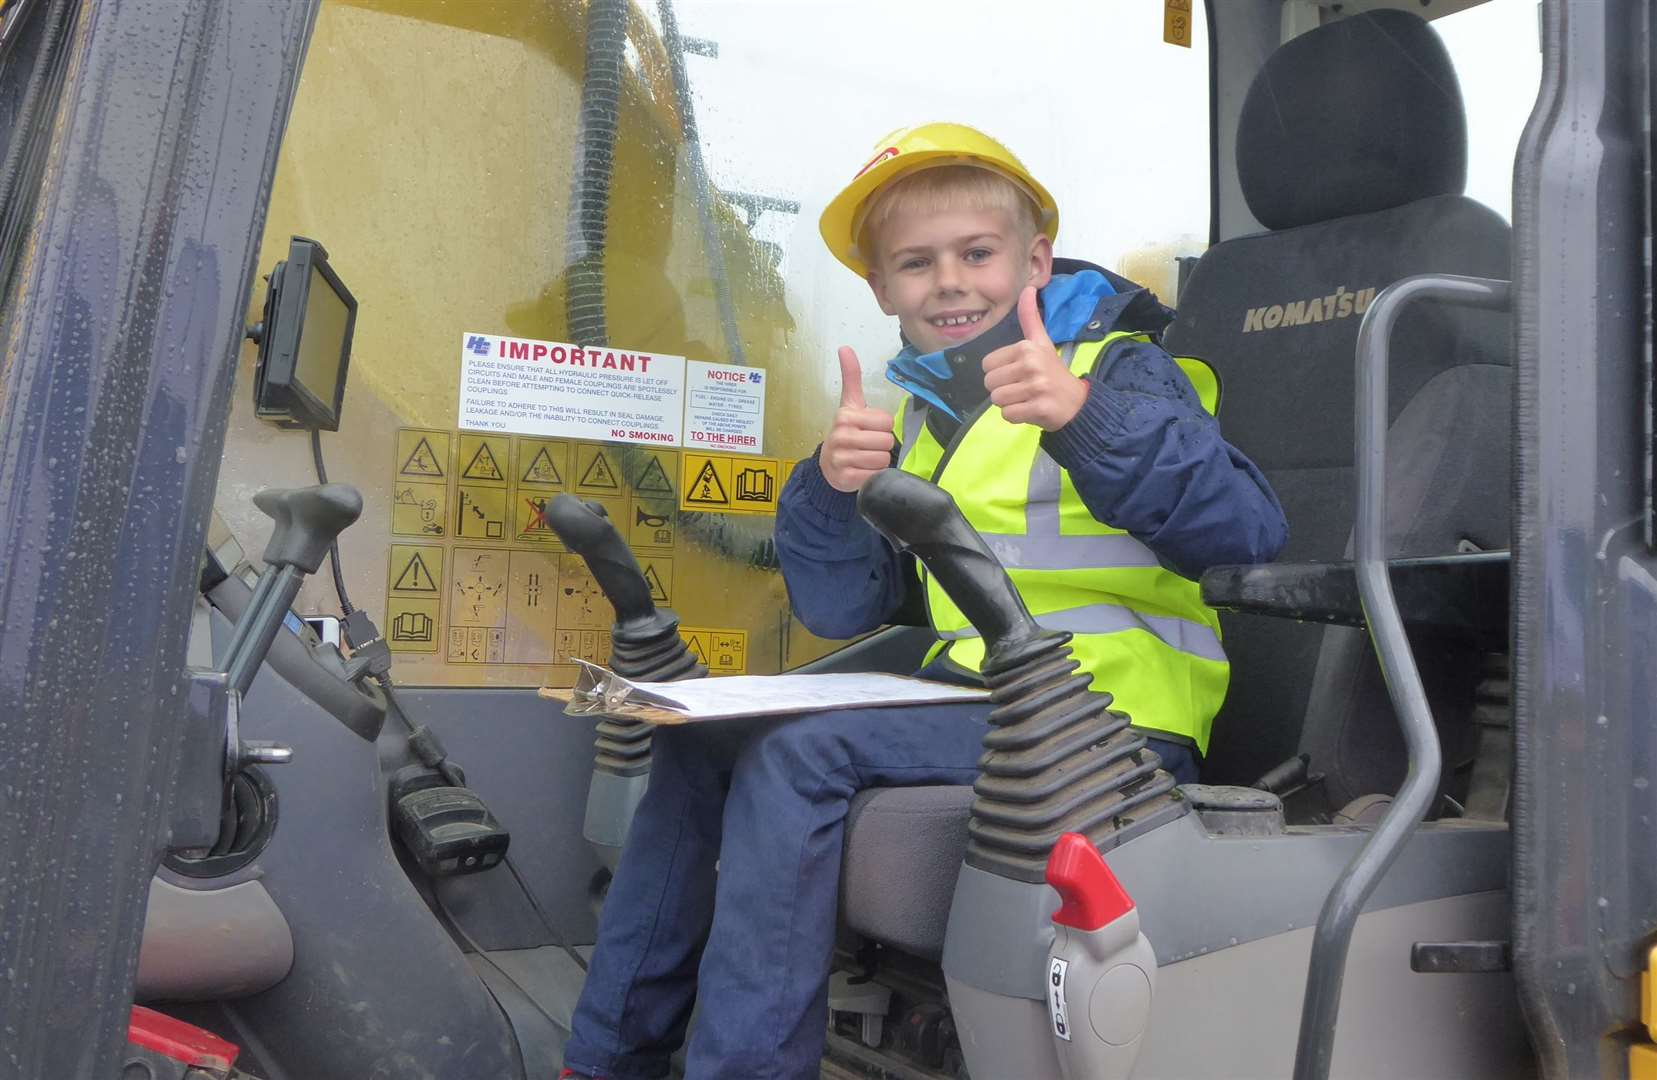 Previous Diggerland Be the Boss winner James Taylor